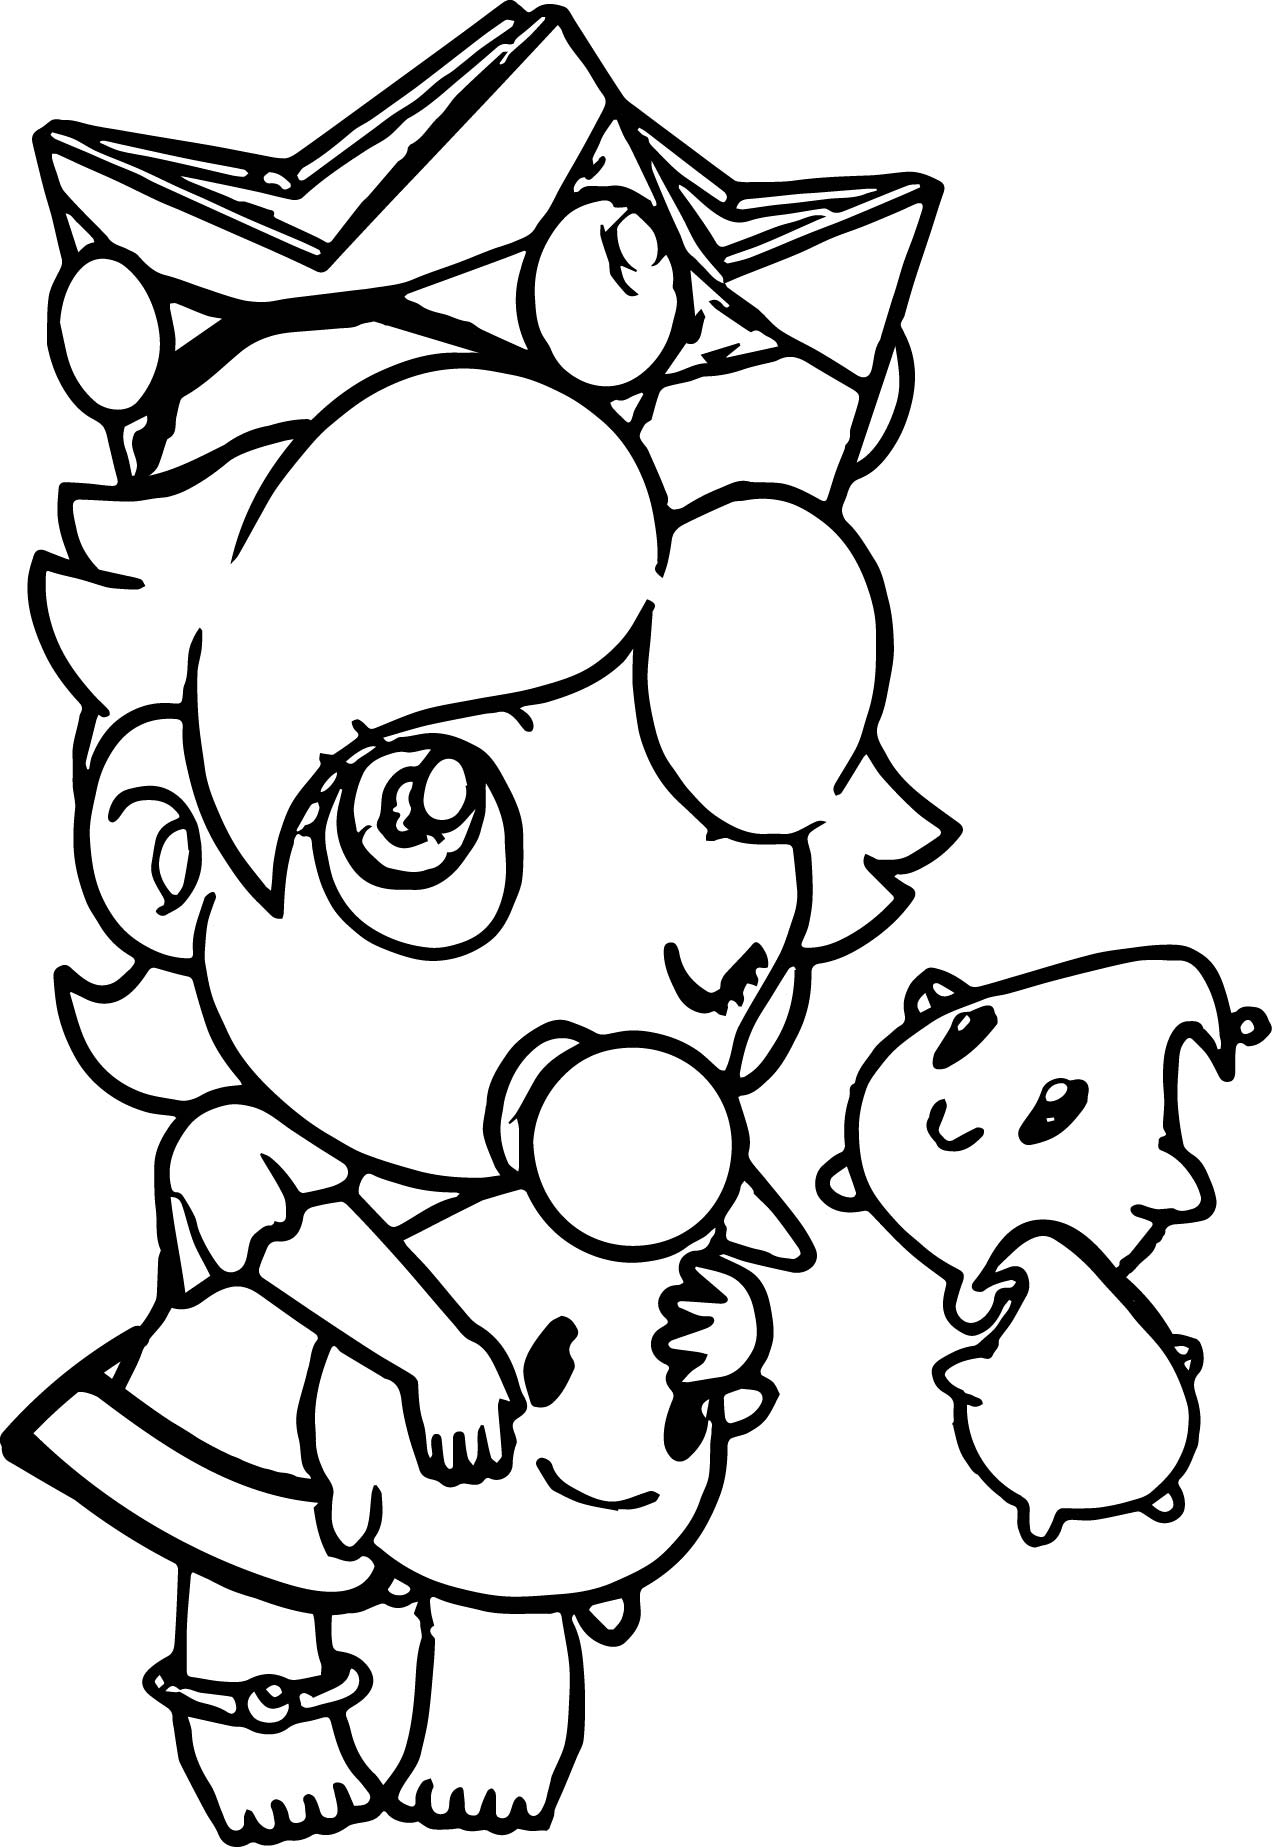 Peach From Mario Coloring Pages The Best Free Rosalina Coloring Page Images Download From 162 Free